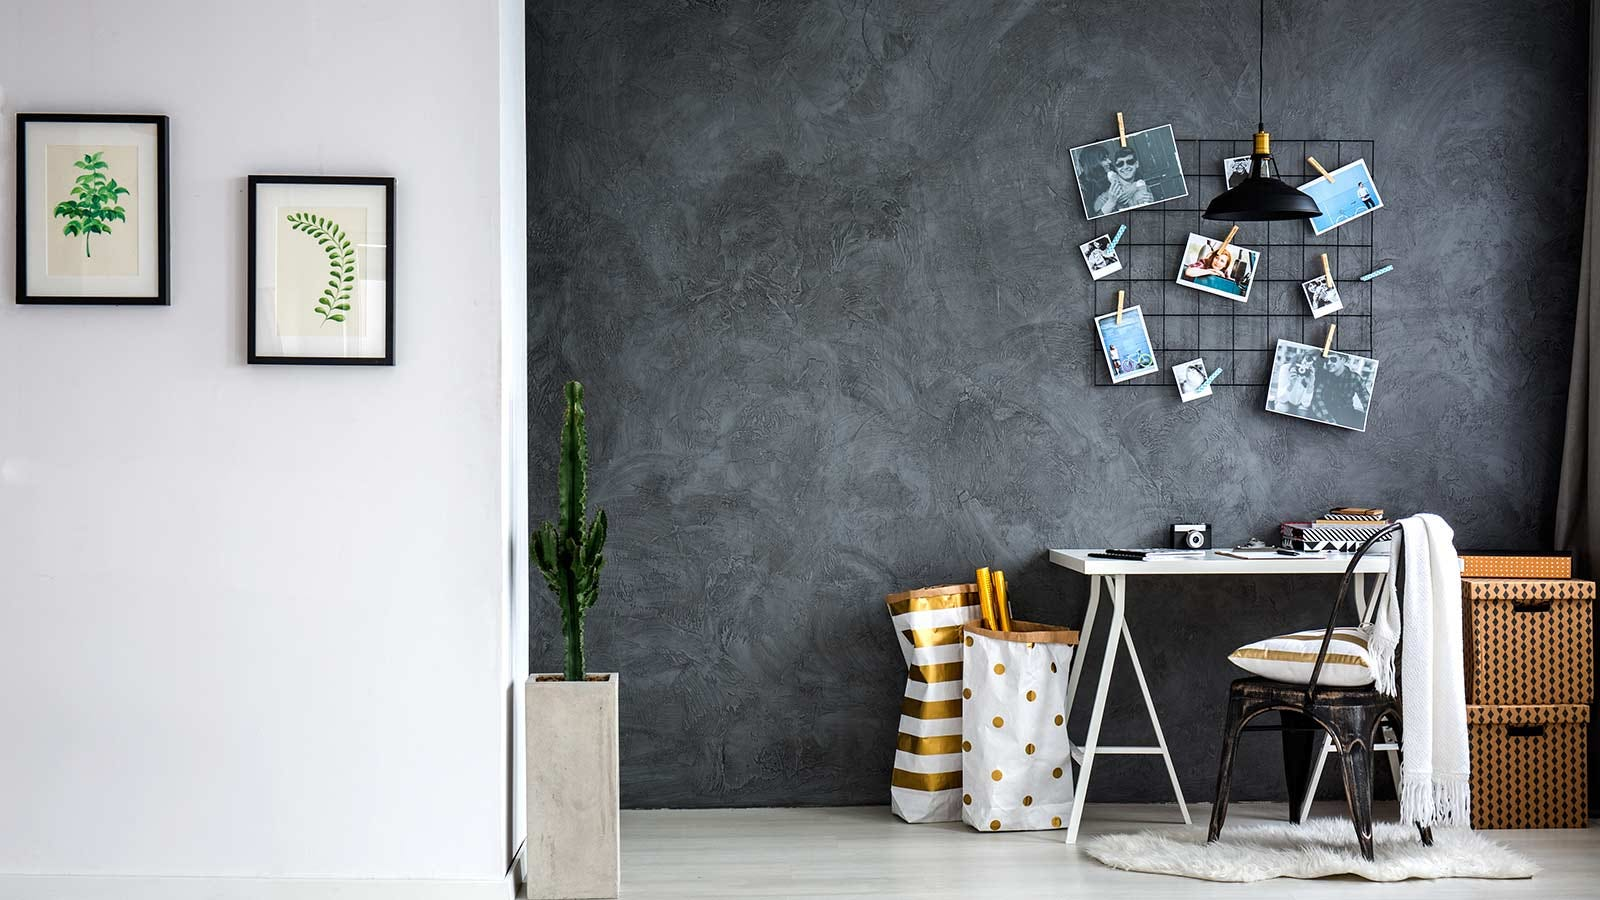 A home workspace with personal photos on a decorative grid hanging above a desk.